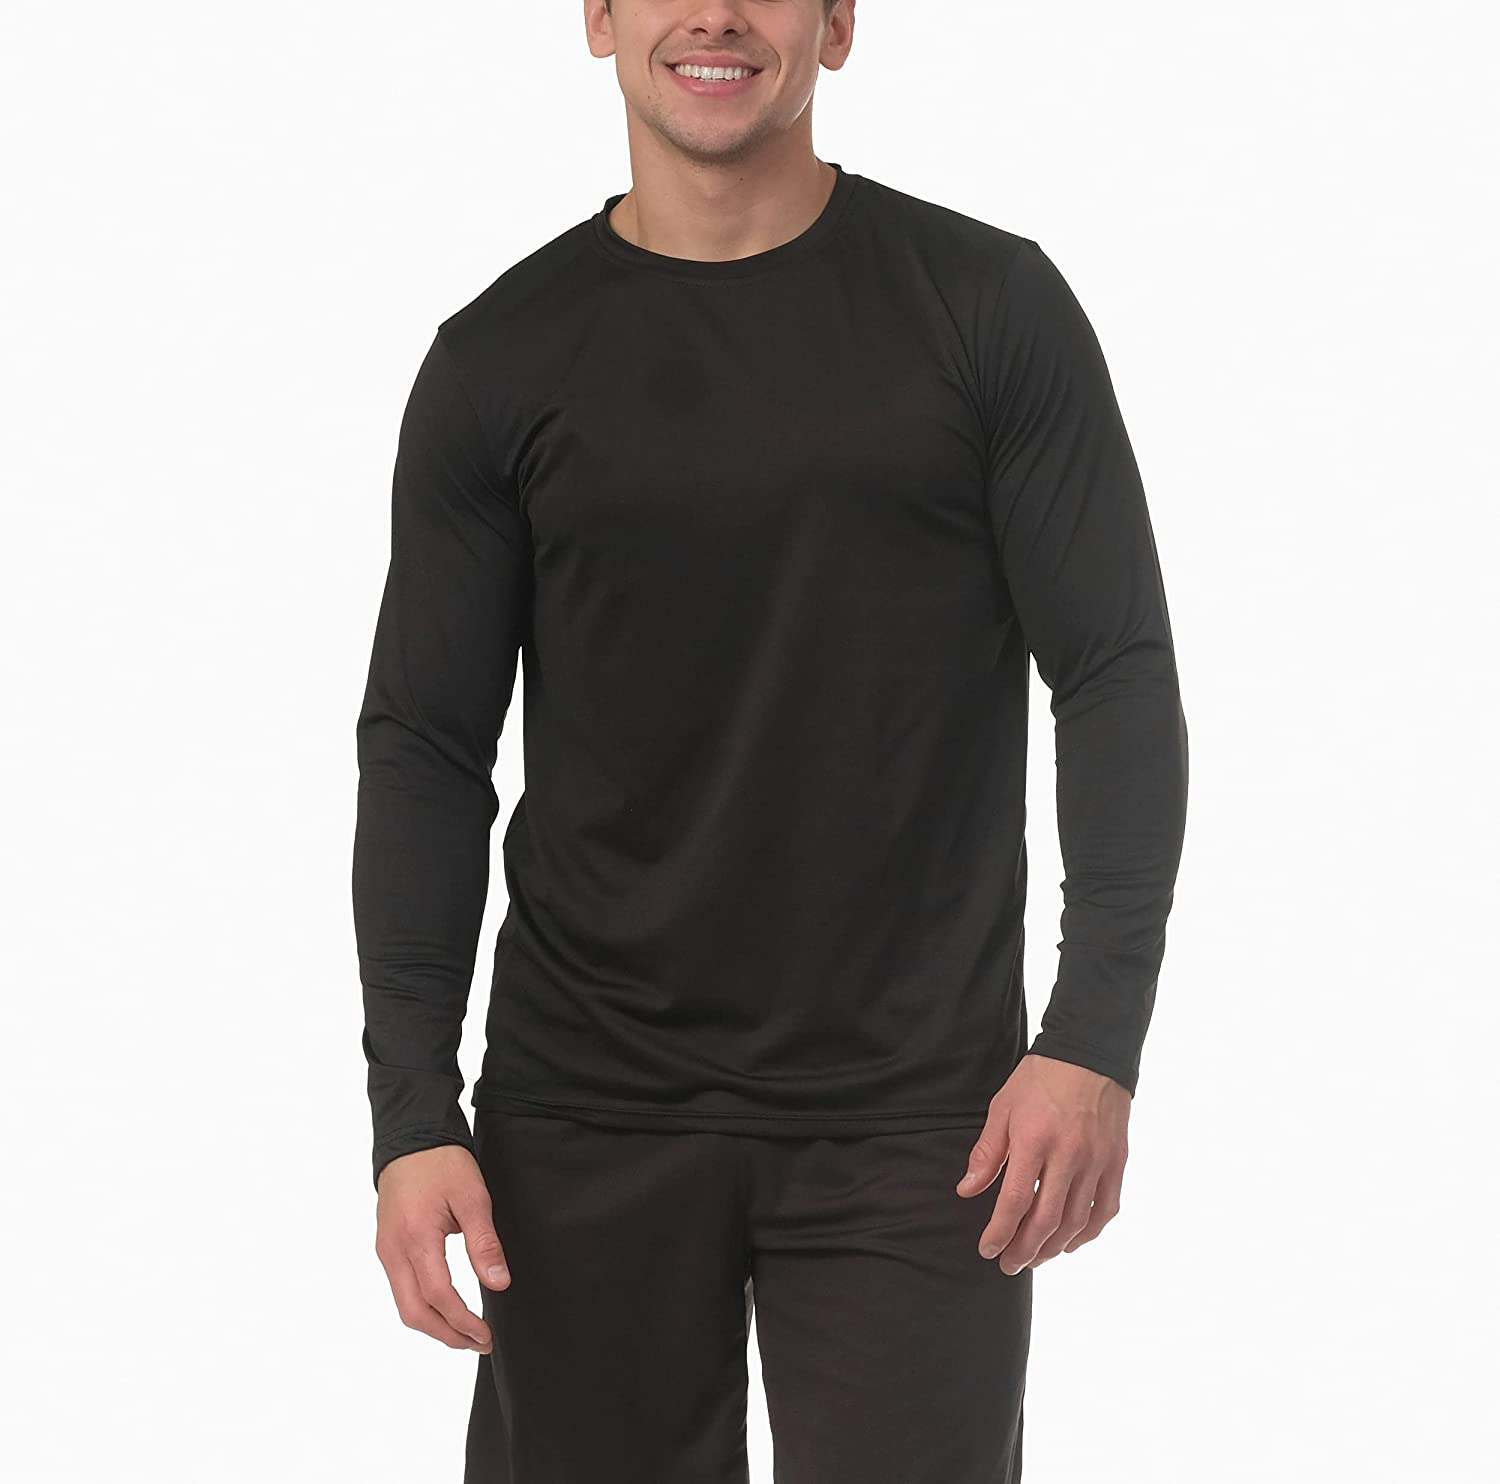 4 Pack: Men's Dry-Fit Moisture Wicking Performance Long Sleeve T-Shirt, UV Sun Protection Outdoor Active Athletic Crew Top at  Men's Clothing store